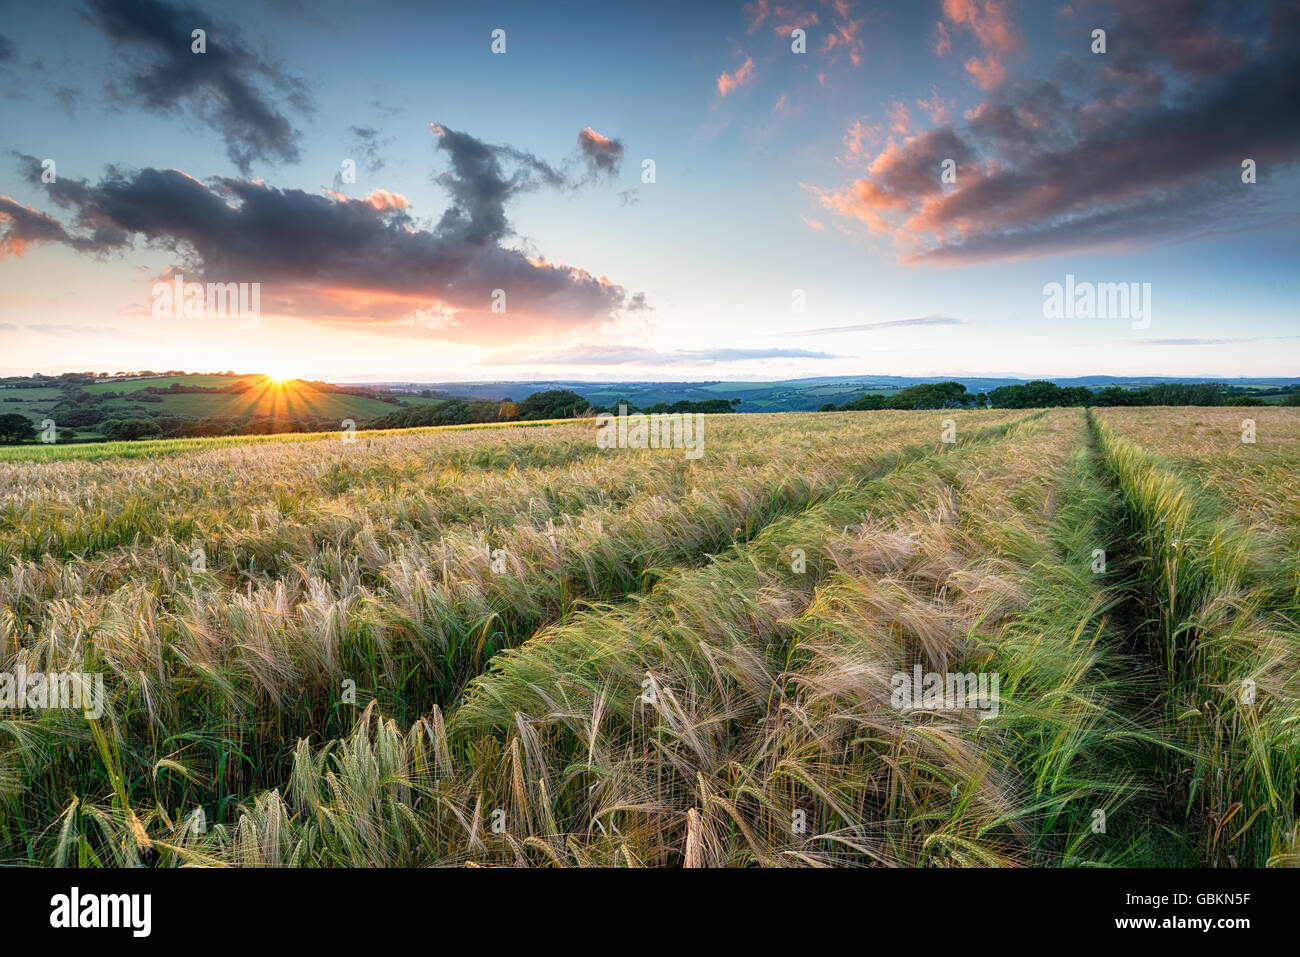 Stunning sunset over a field of ripening barley on farmland near Bodmin in Cornwall - Stock Image